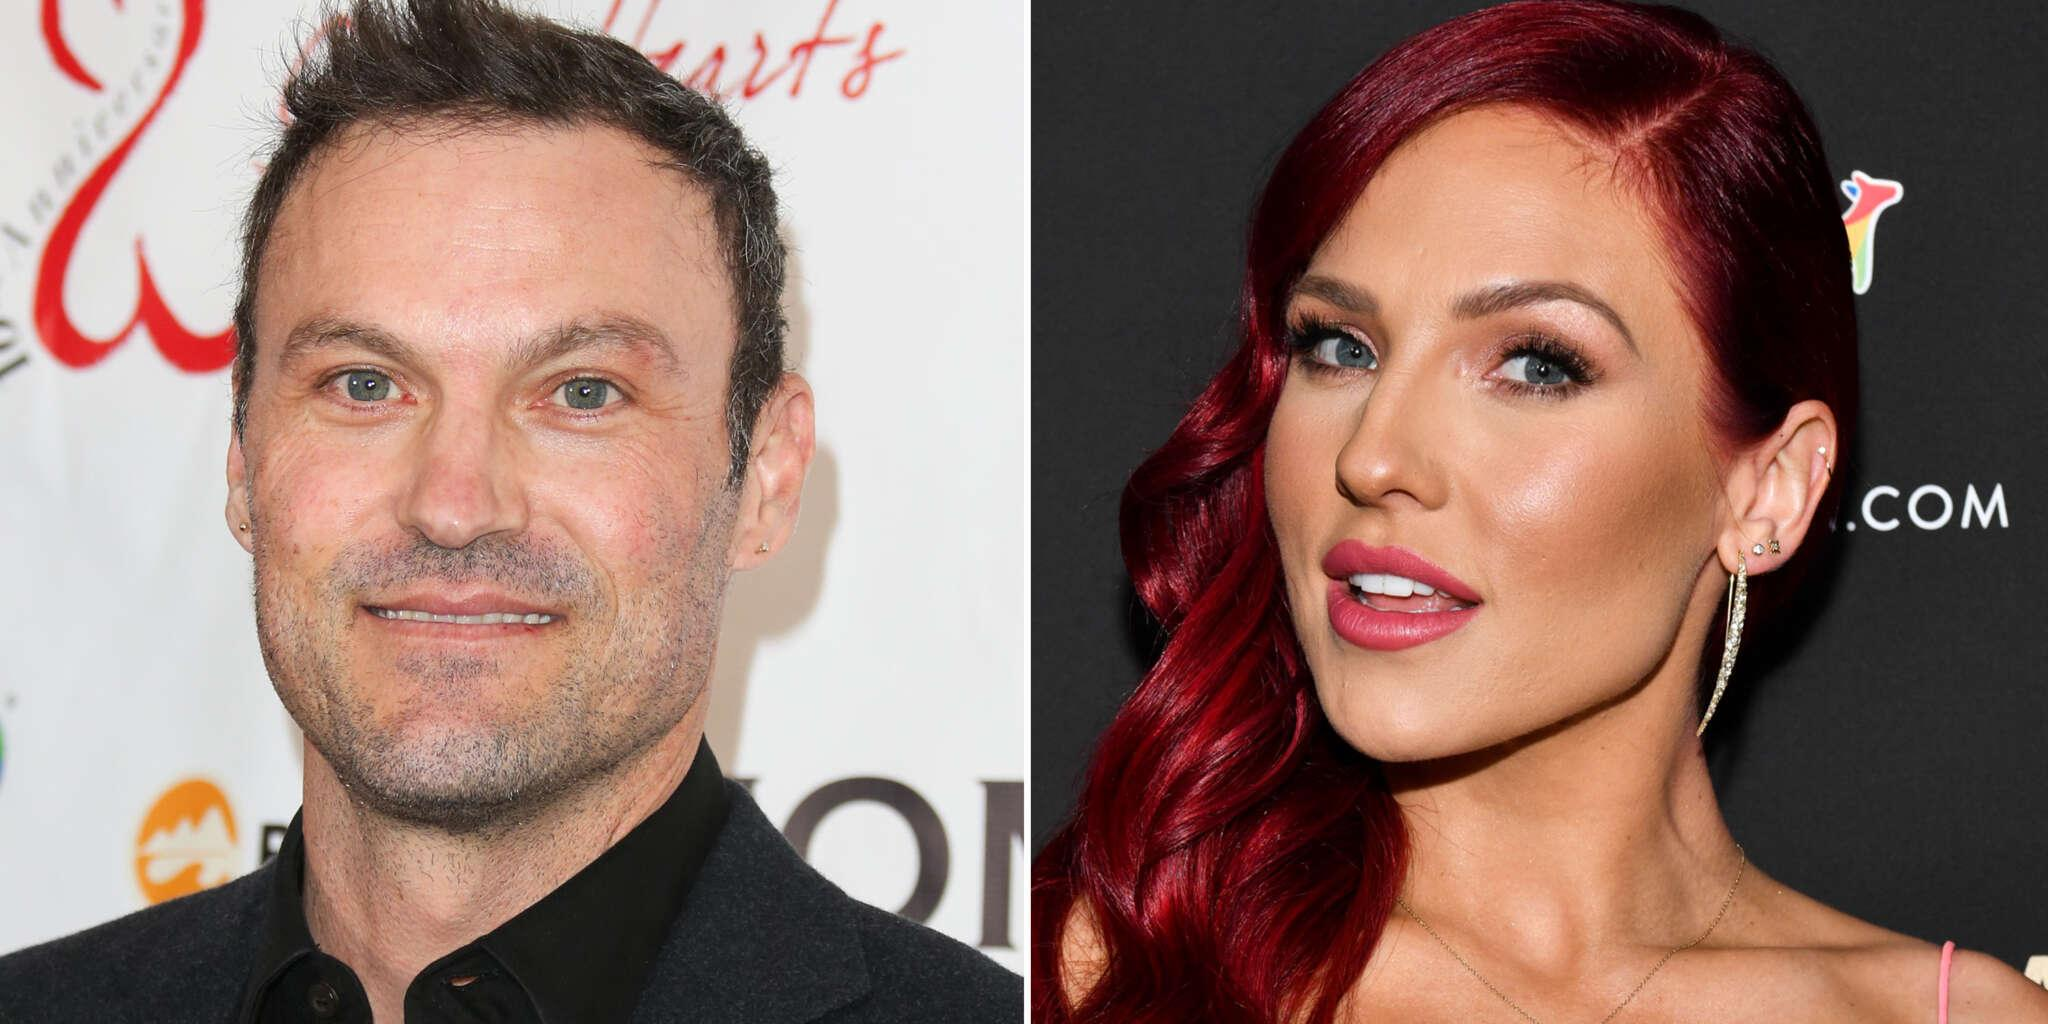 Sharna Burgess Says Fans Keep Asking About Brian Austin Green - Here's What She Told Them About Her 'Relationship Status!'